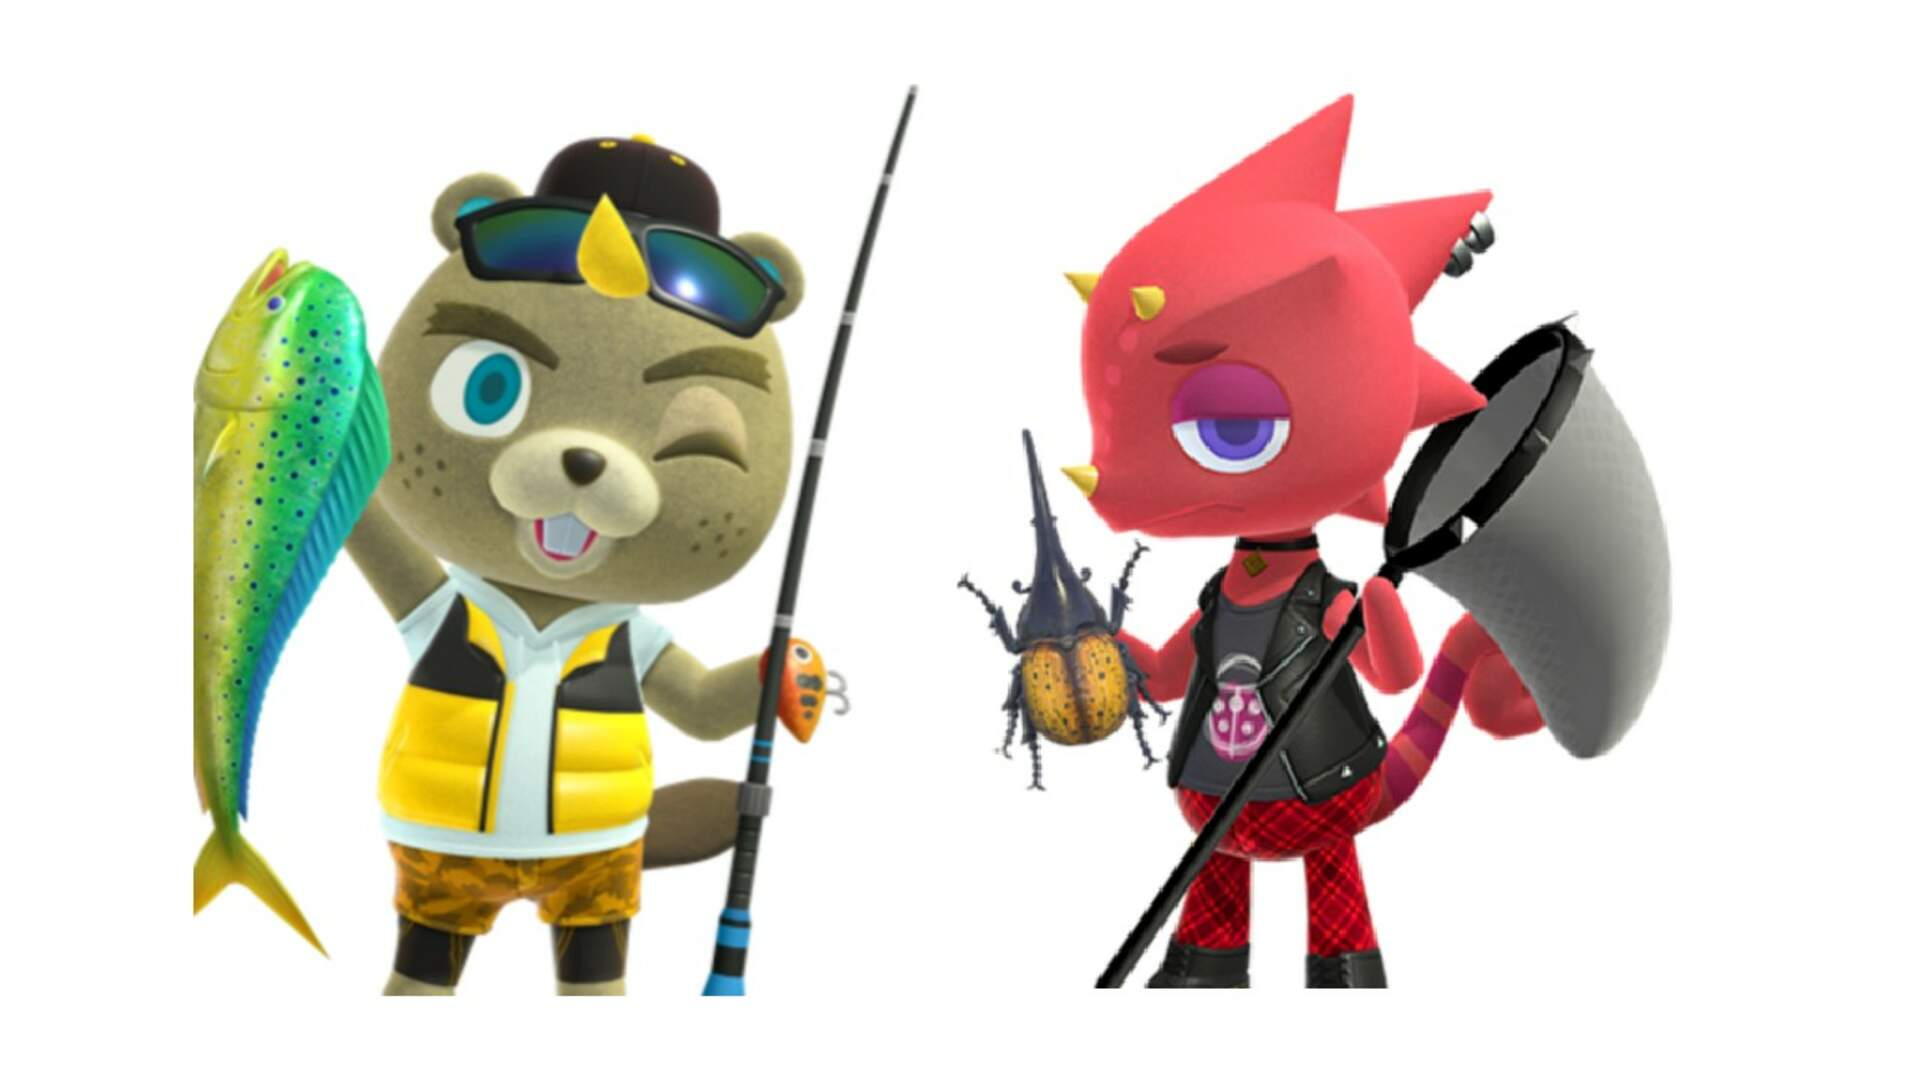 It's Unlikely Animal Crossing: New Horizons' Flick and C.J. Are Strictly Business Partners